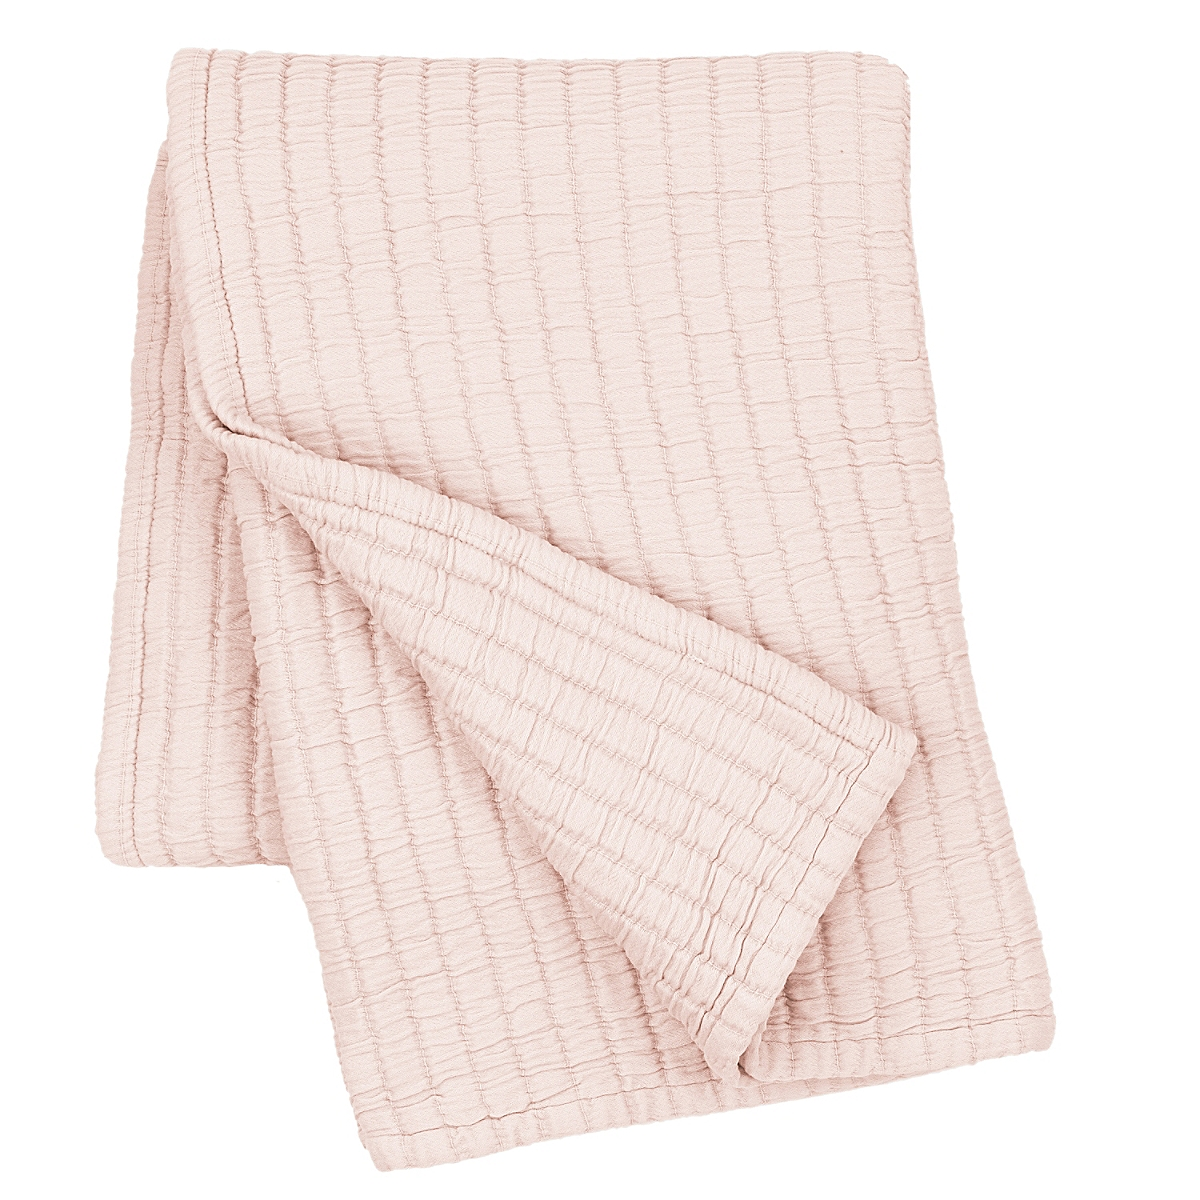 "Boyfriend Slipper Pink Matelasse Throw 50"" x 70"""